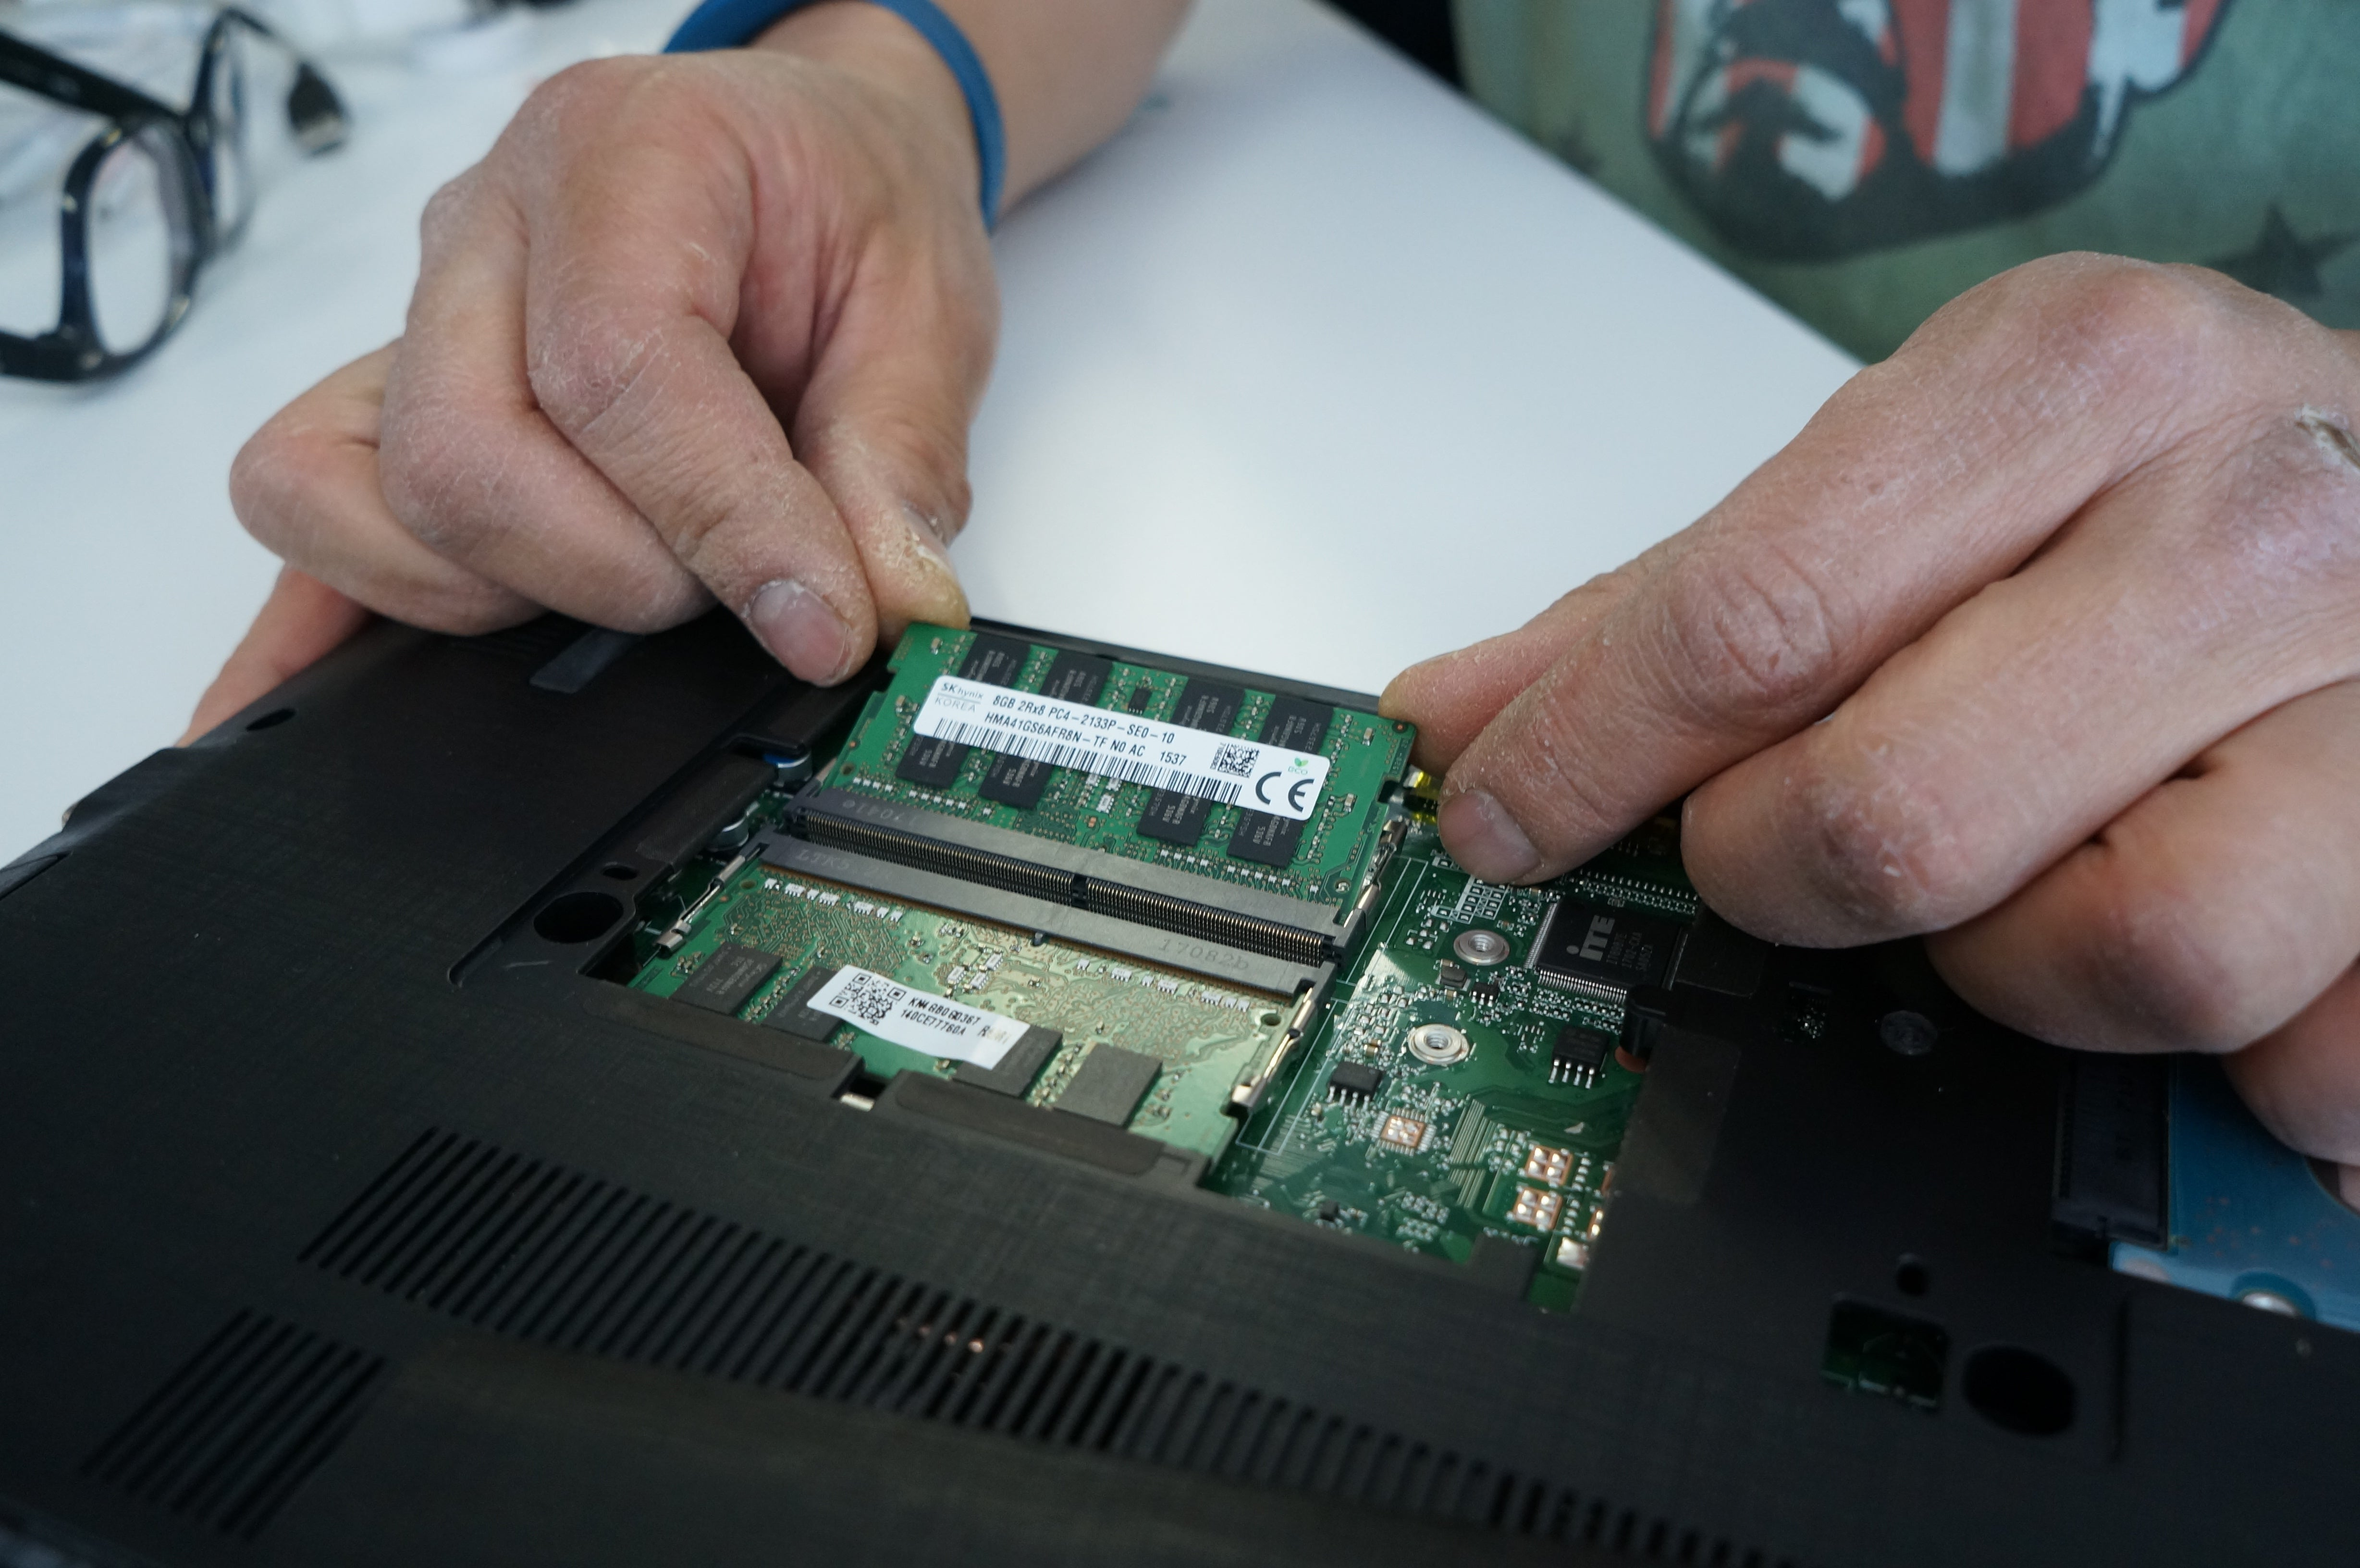 How To Upgrade Your Laptops Ram Pcworld After Inserting Wires The Plug Place Into Proper Slot Acer Aspire E15 At Angle